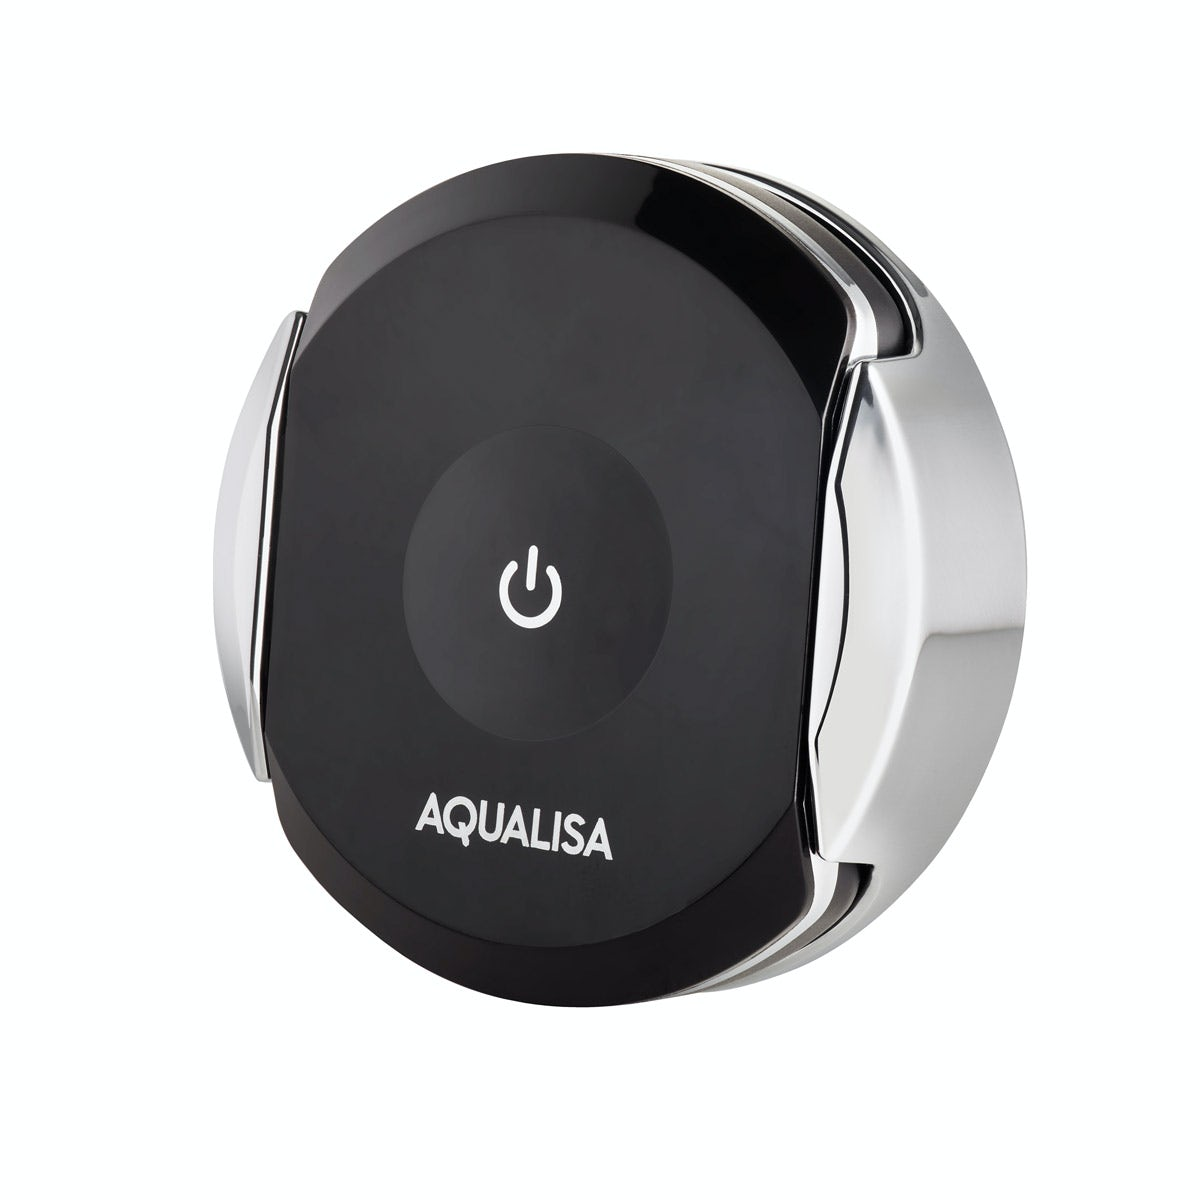 Aqualisa Q digital remote control wireless